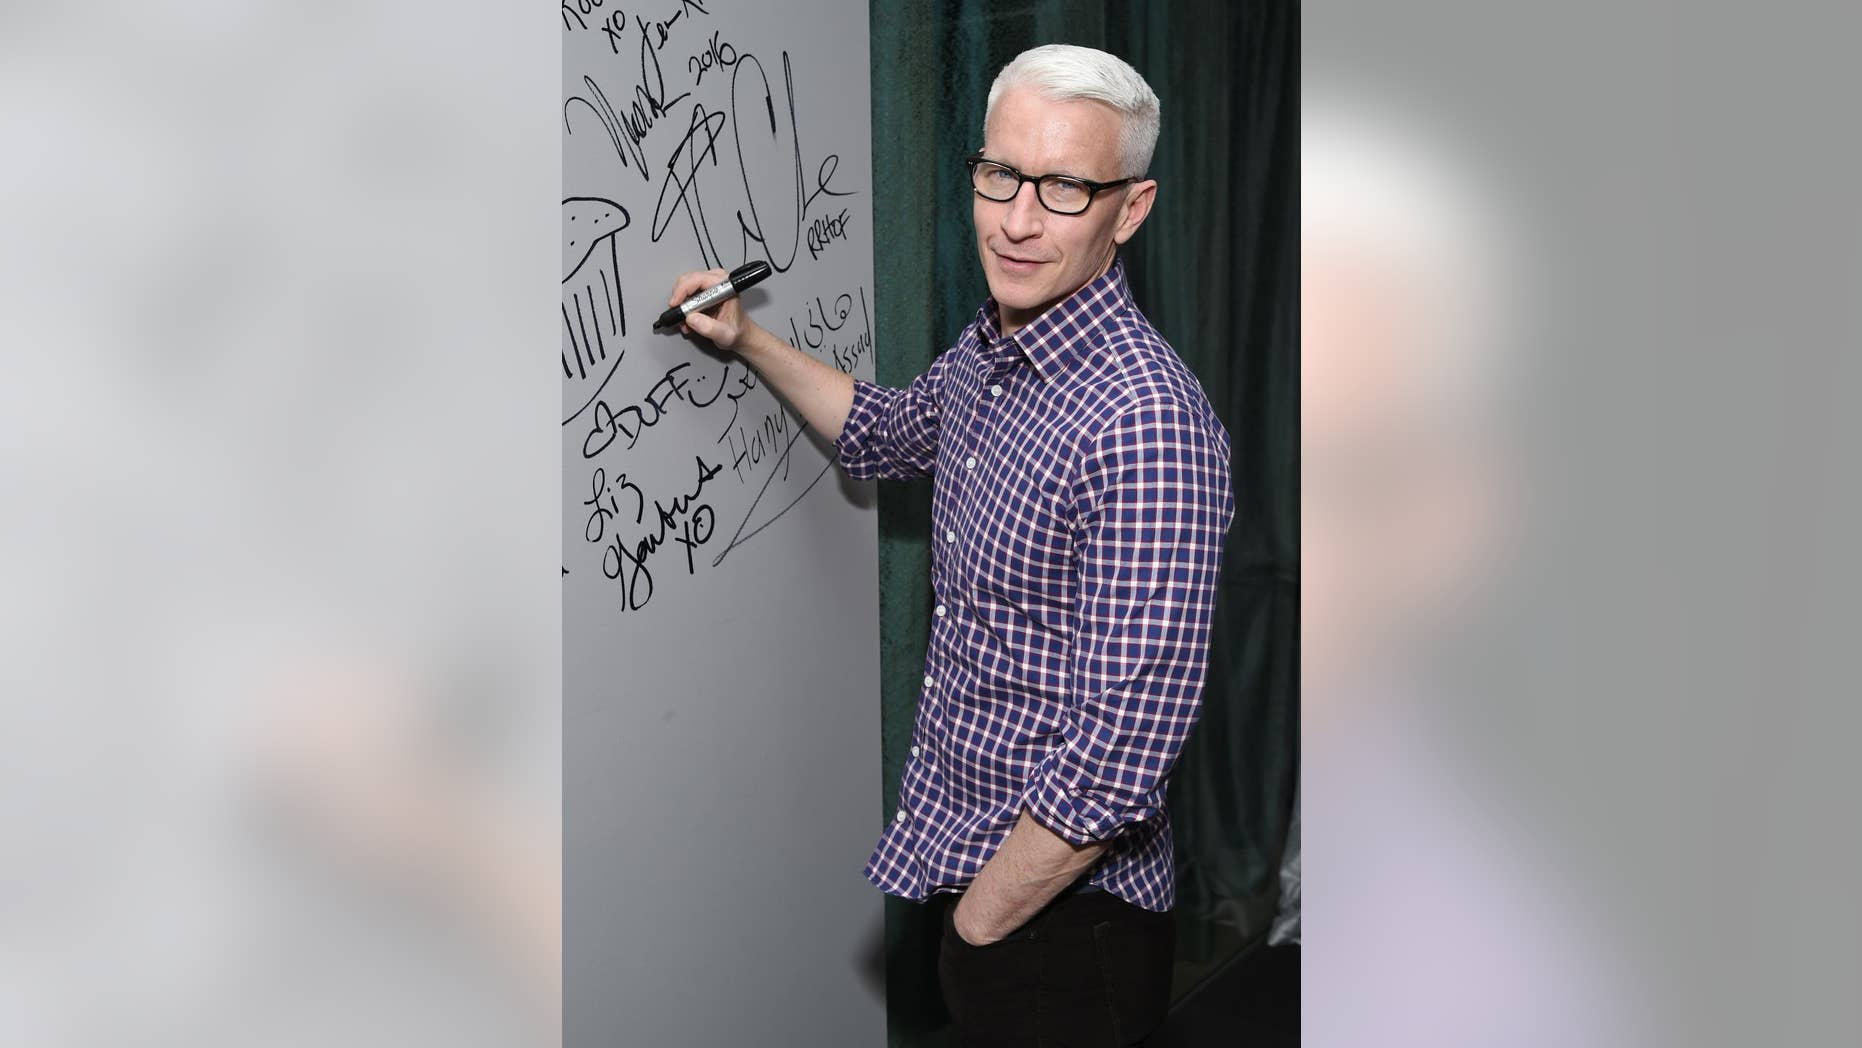 """FILE - In this April 15, 2016 file photo, CNN News anchor Anderson Cooper appears at AOL's BUILD Speaker Series to discuss the HBO documentary, """"Nothing Left Unsaid"""", at AOL Studios in New York. Cooper's name has been circulating as a possible replacement for Michael Strahan on the morning talk show, """"Live! With Kelly and Michael."""" Strahan, who started in 2012, is leaving to work full-time at """"Good Morning America"""" and ABC announced that his last day will be on May 13. (Photo by Evan Agostini/Invision/AP, File)"""